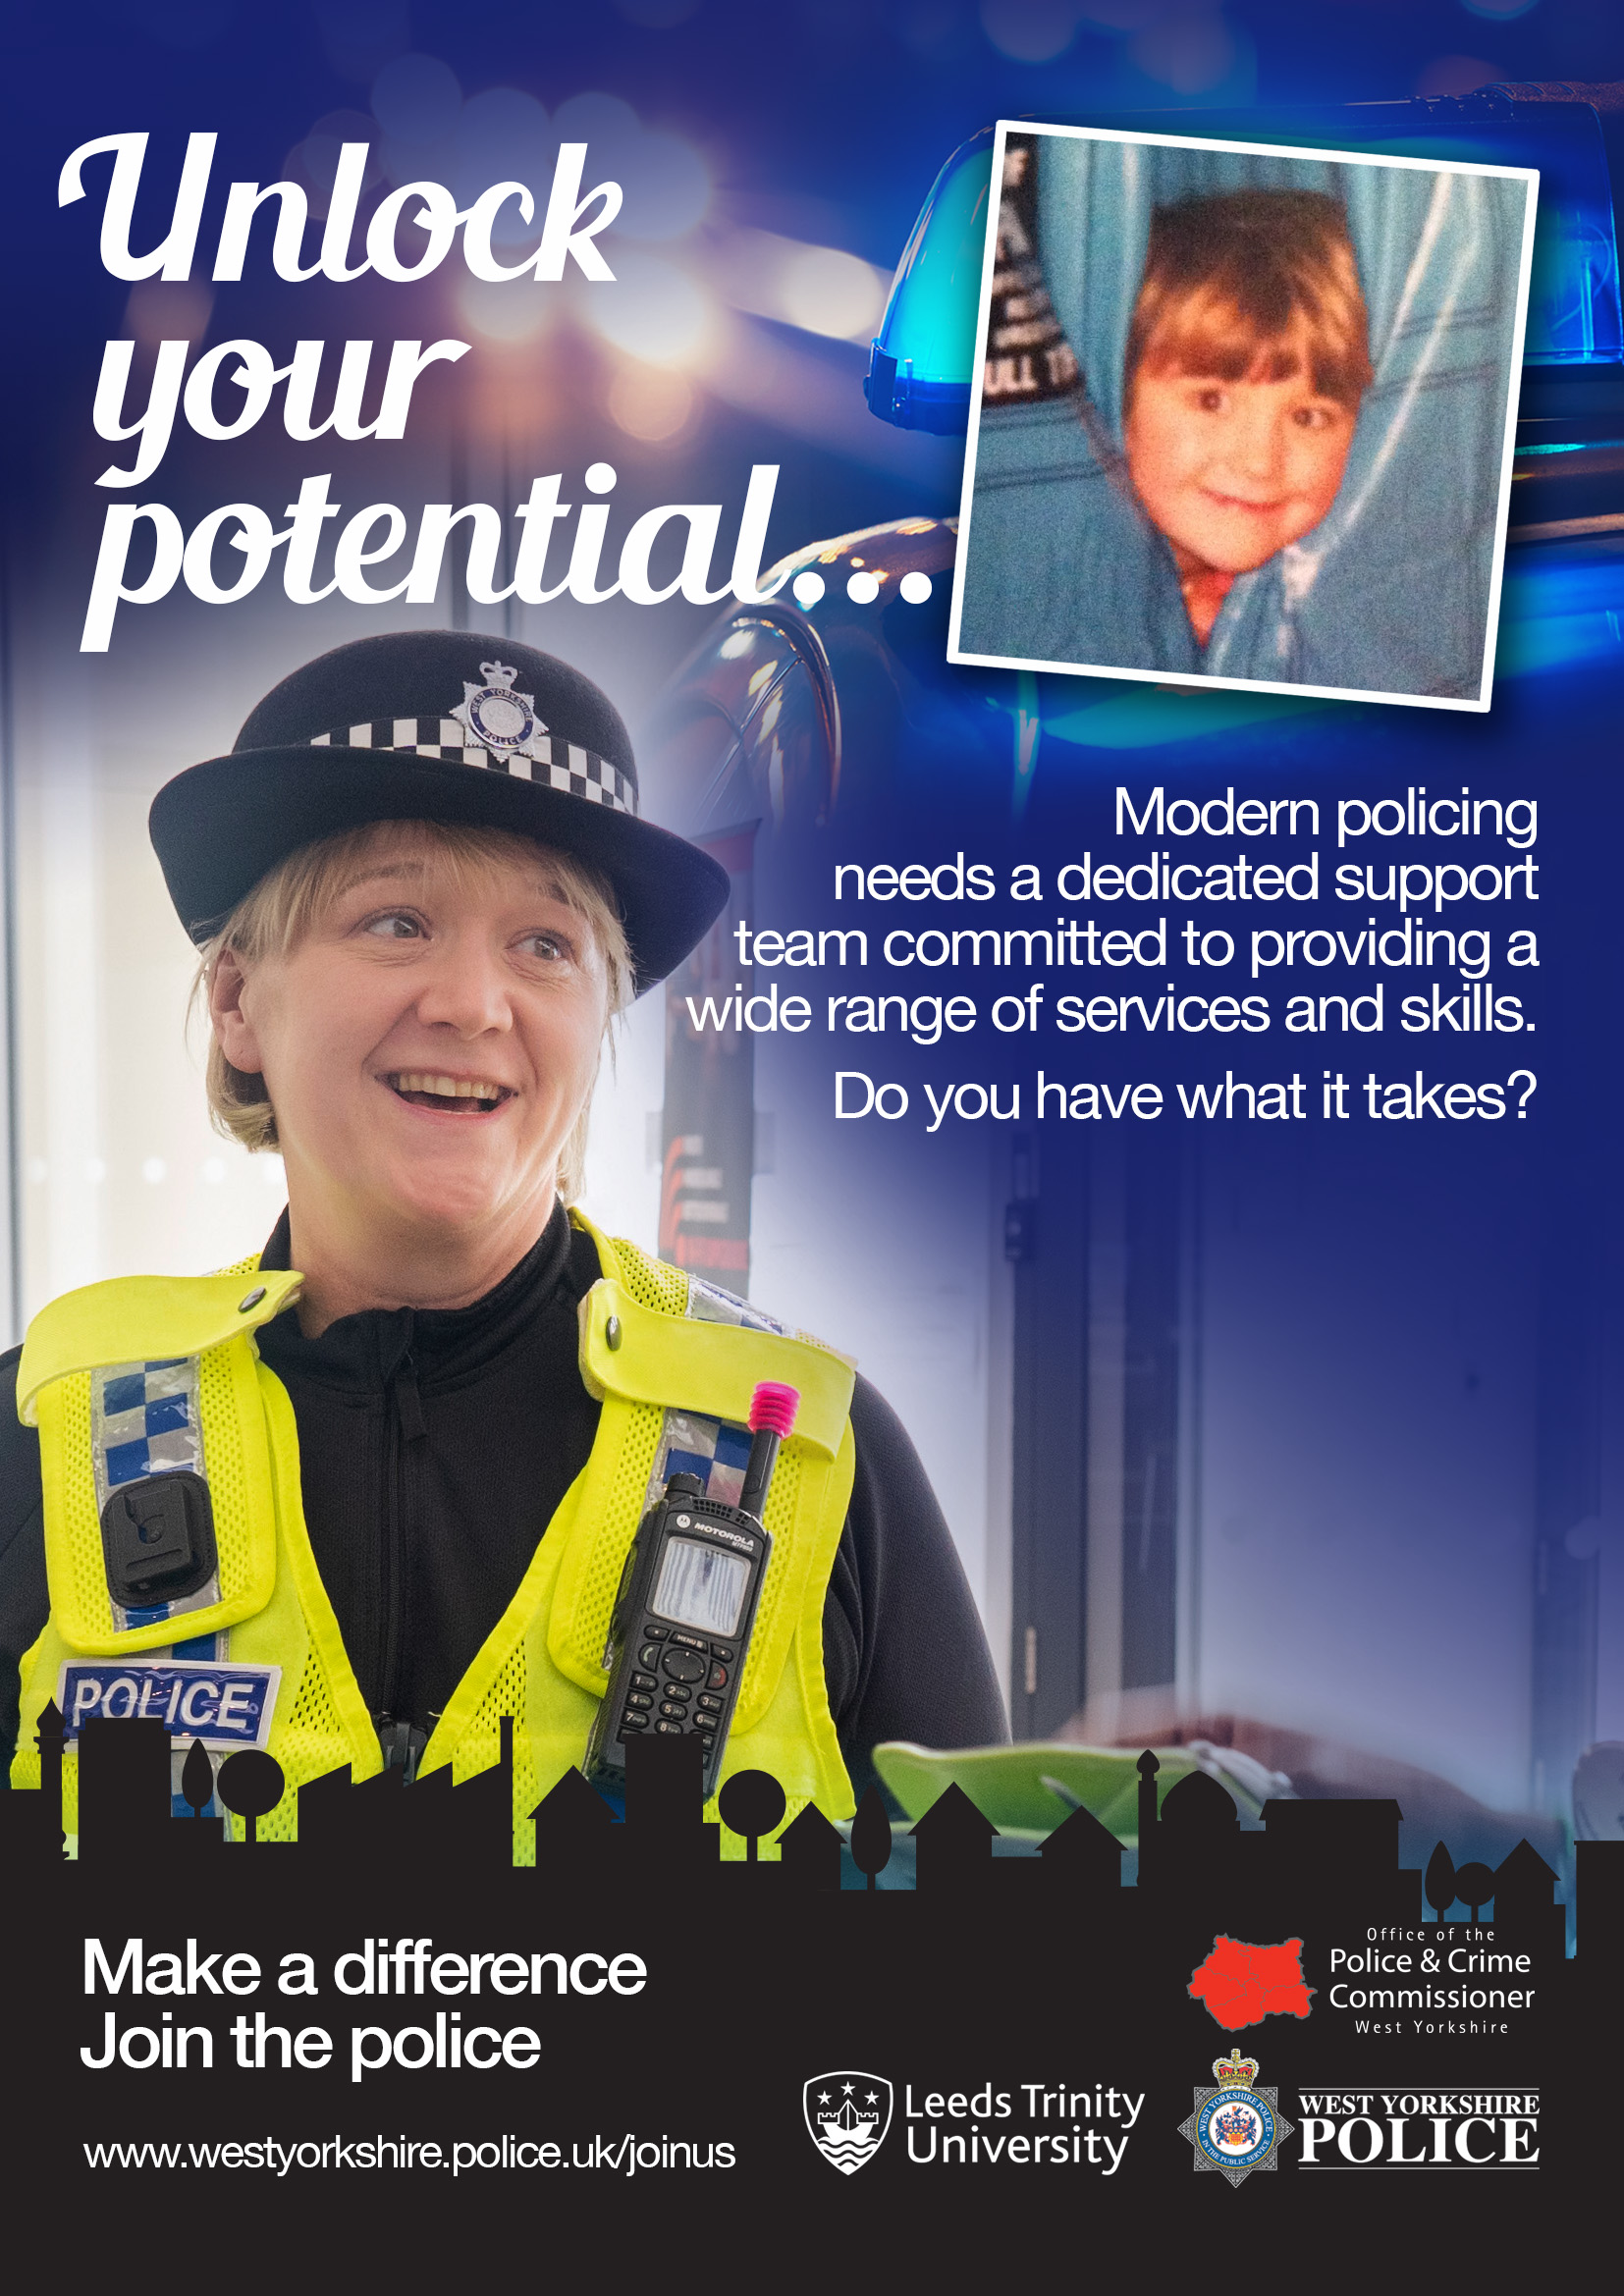 PC Sally Baines